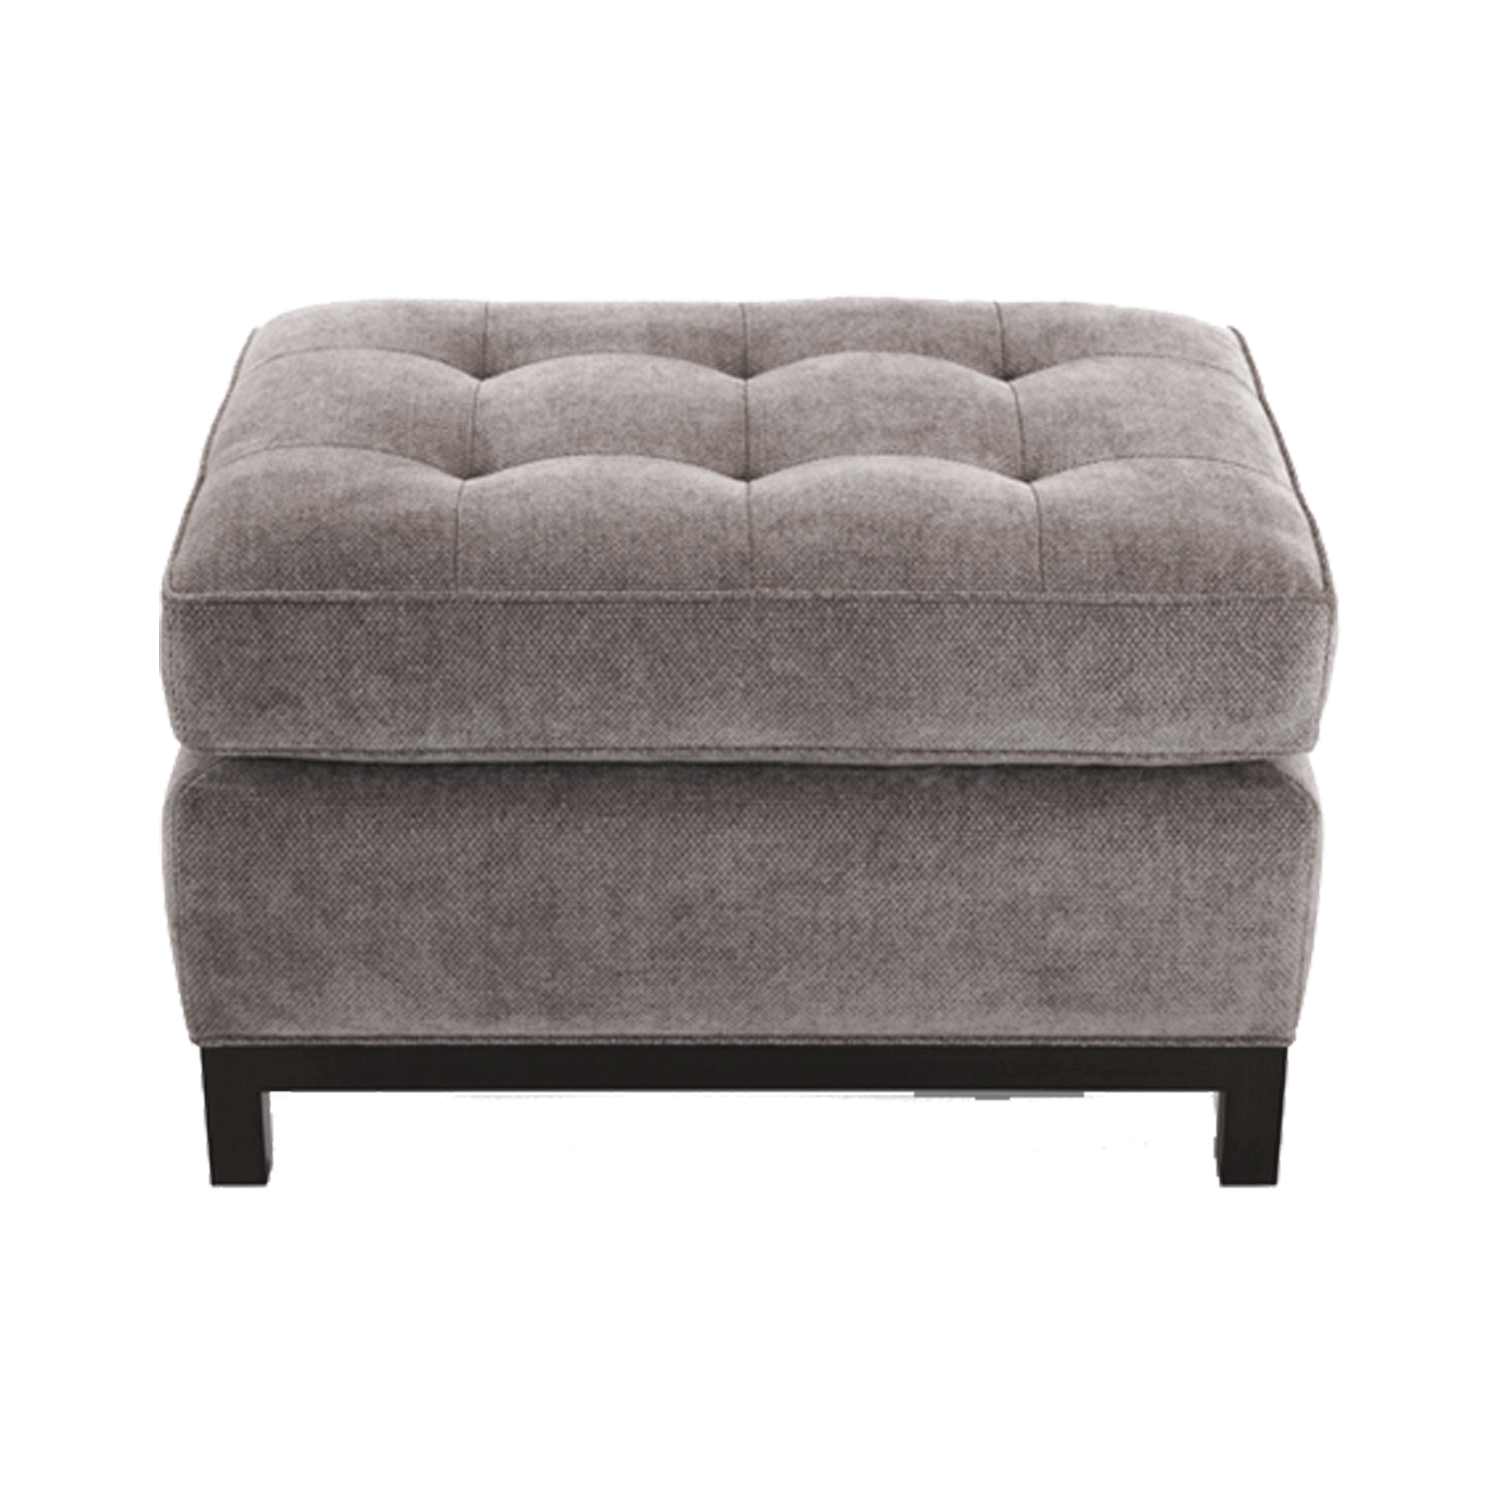 Buy Carson Ottoman by Naula - Made-to-Order designer Furniture from ...